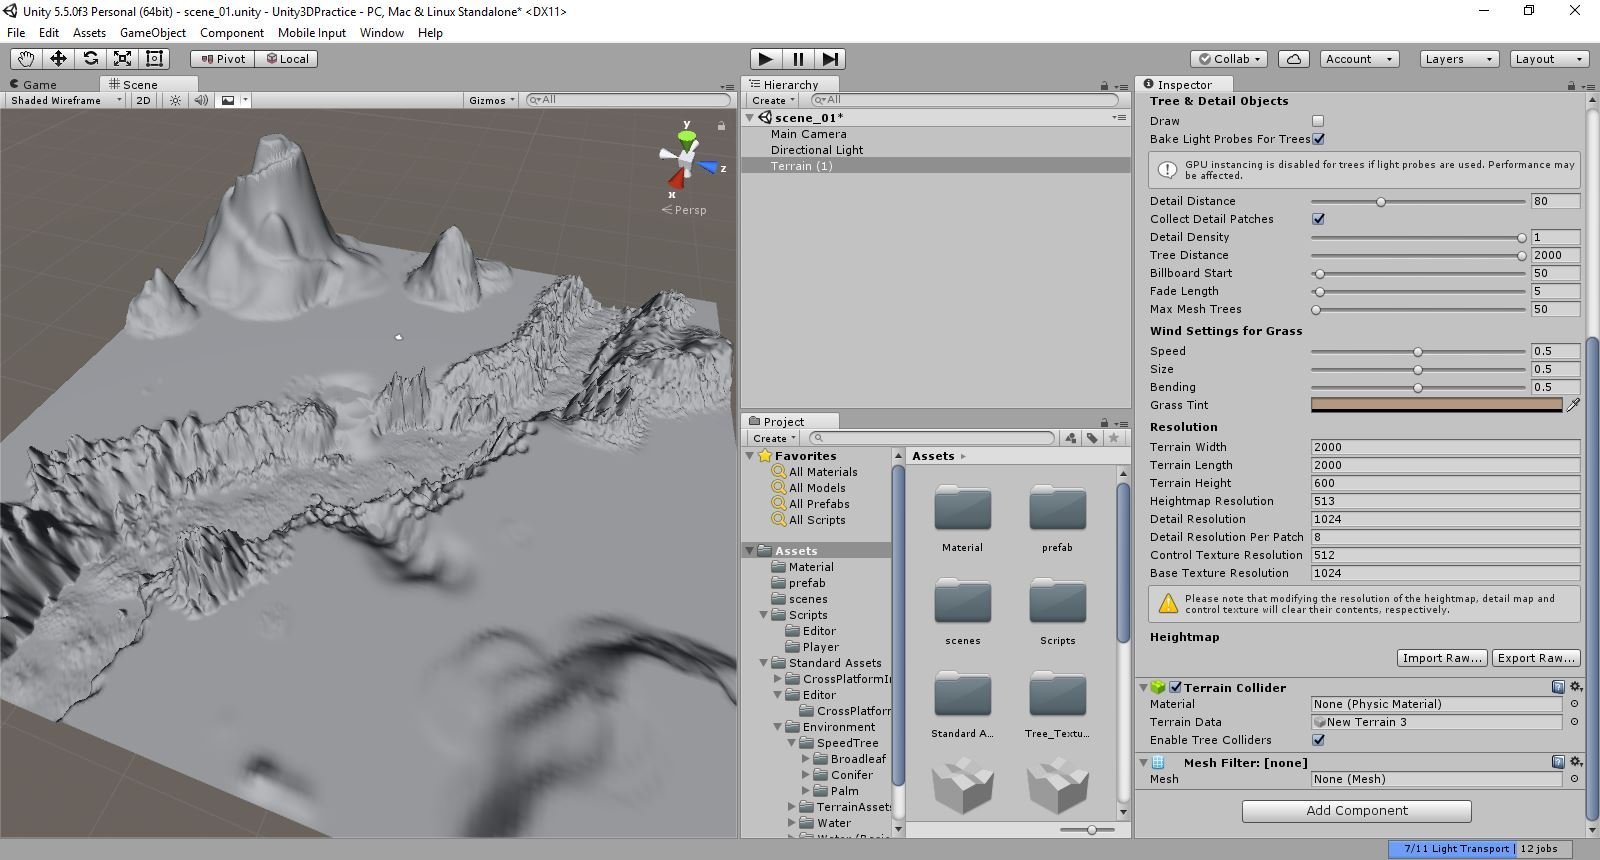 Terrain in Editor Not Appearing as Shaded Wireframe and Blue Terrain